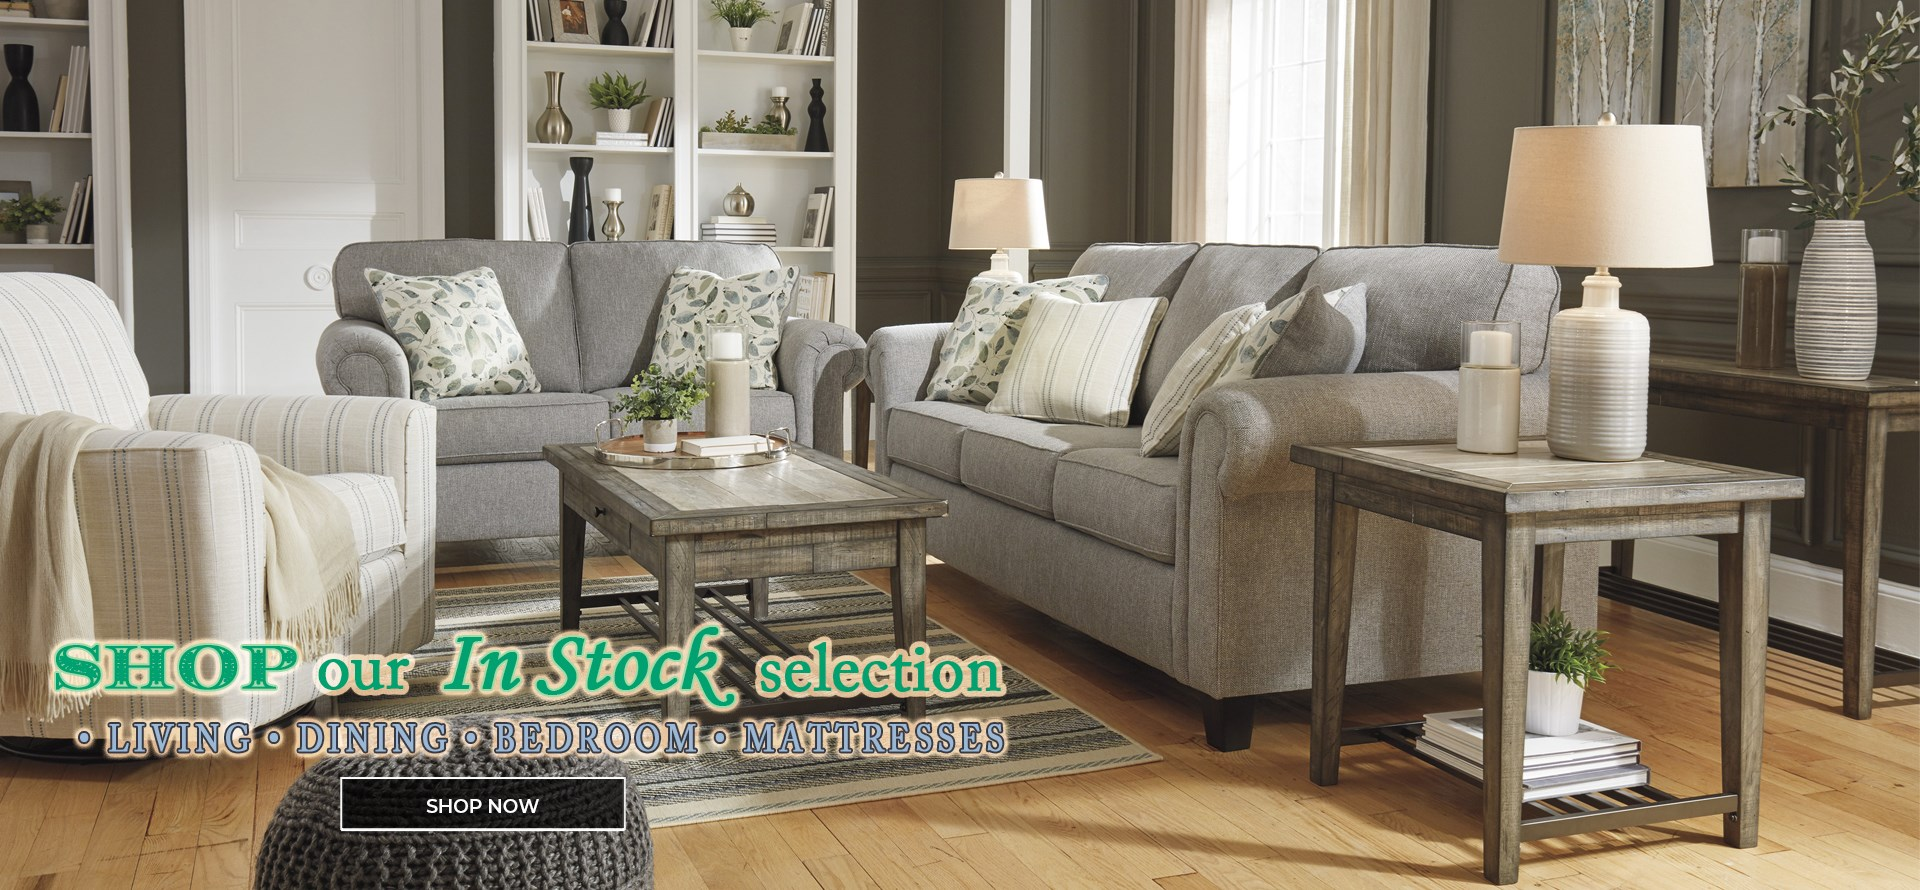 Shop our in stock selection